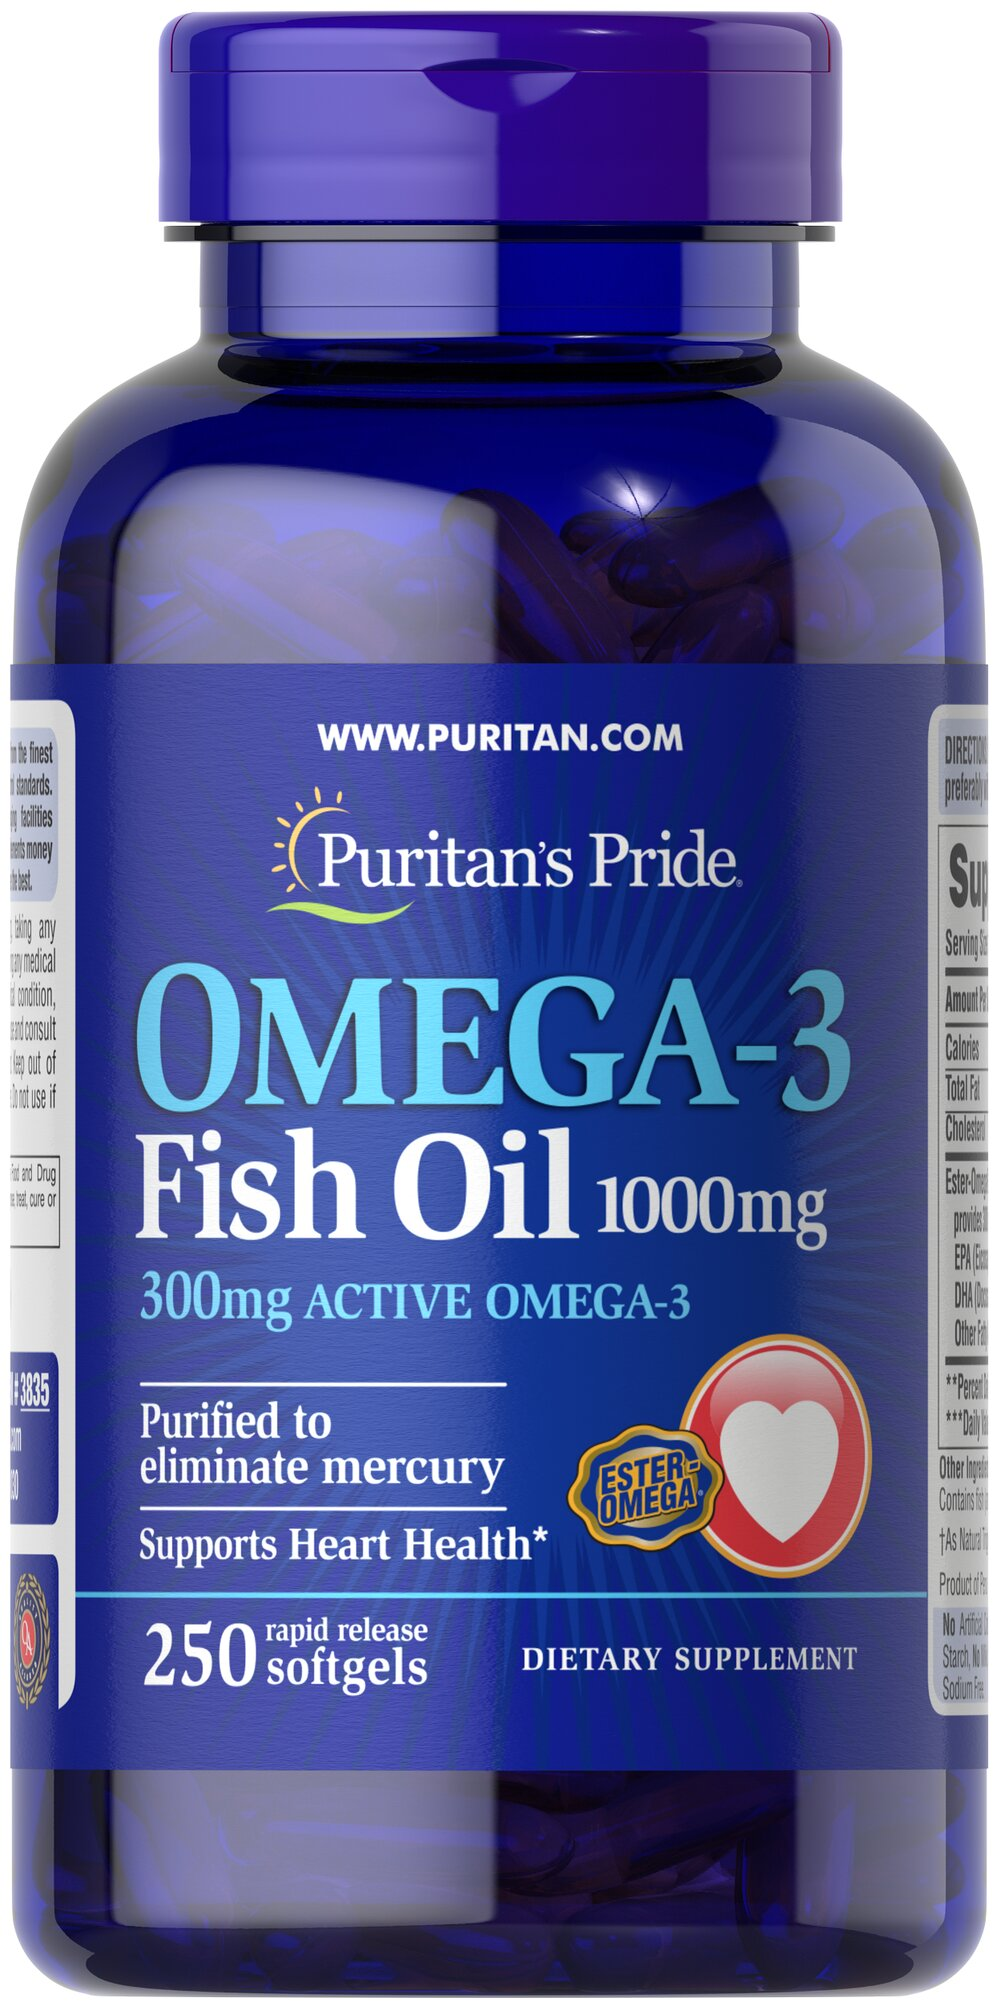 Omega 3 fish oil 1000 mg 300 mg active omega 3 250 for Advantages of fish oil